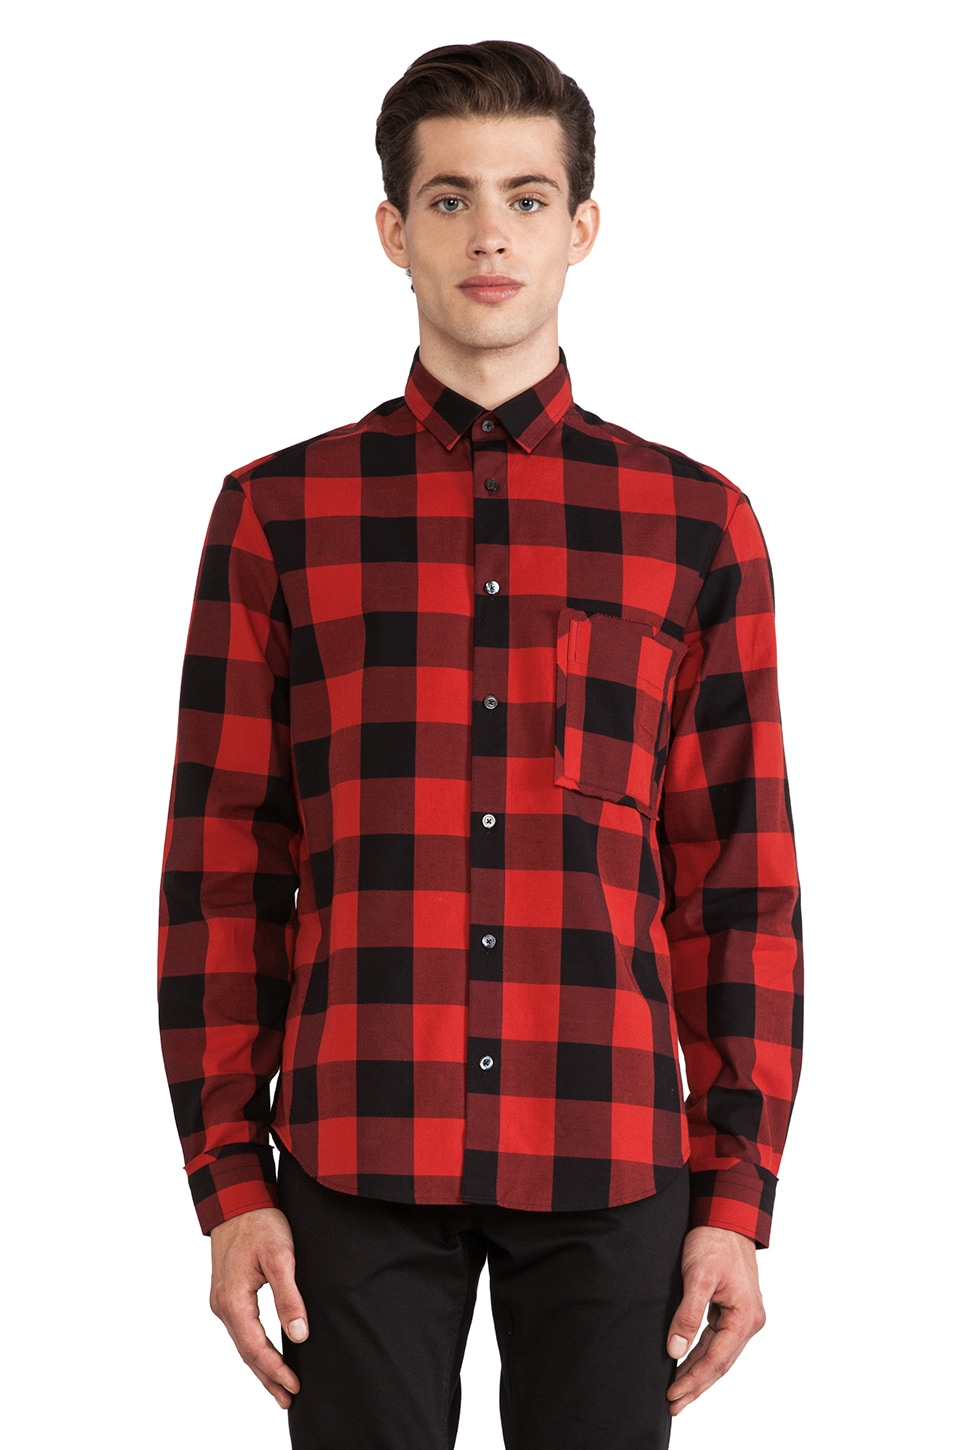 McQ Alexander McQueen Raw Pocket Button Down in Burnt Brick Lumberjack